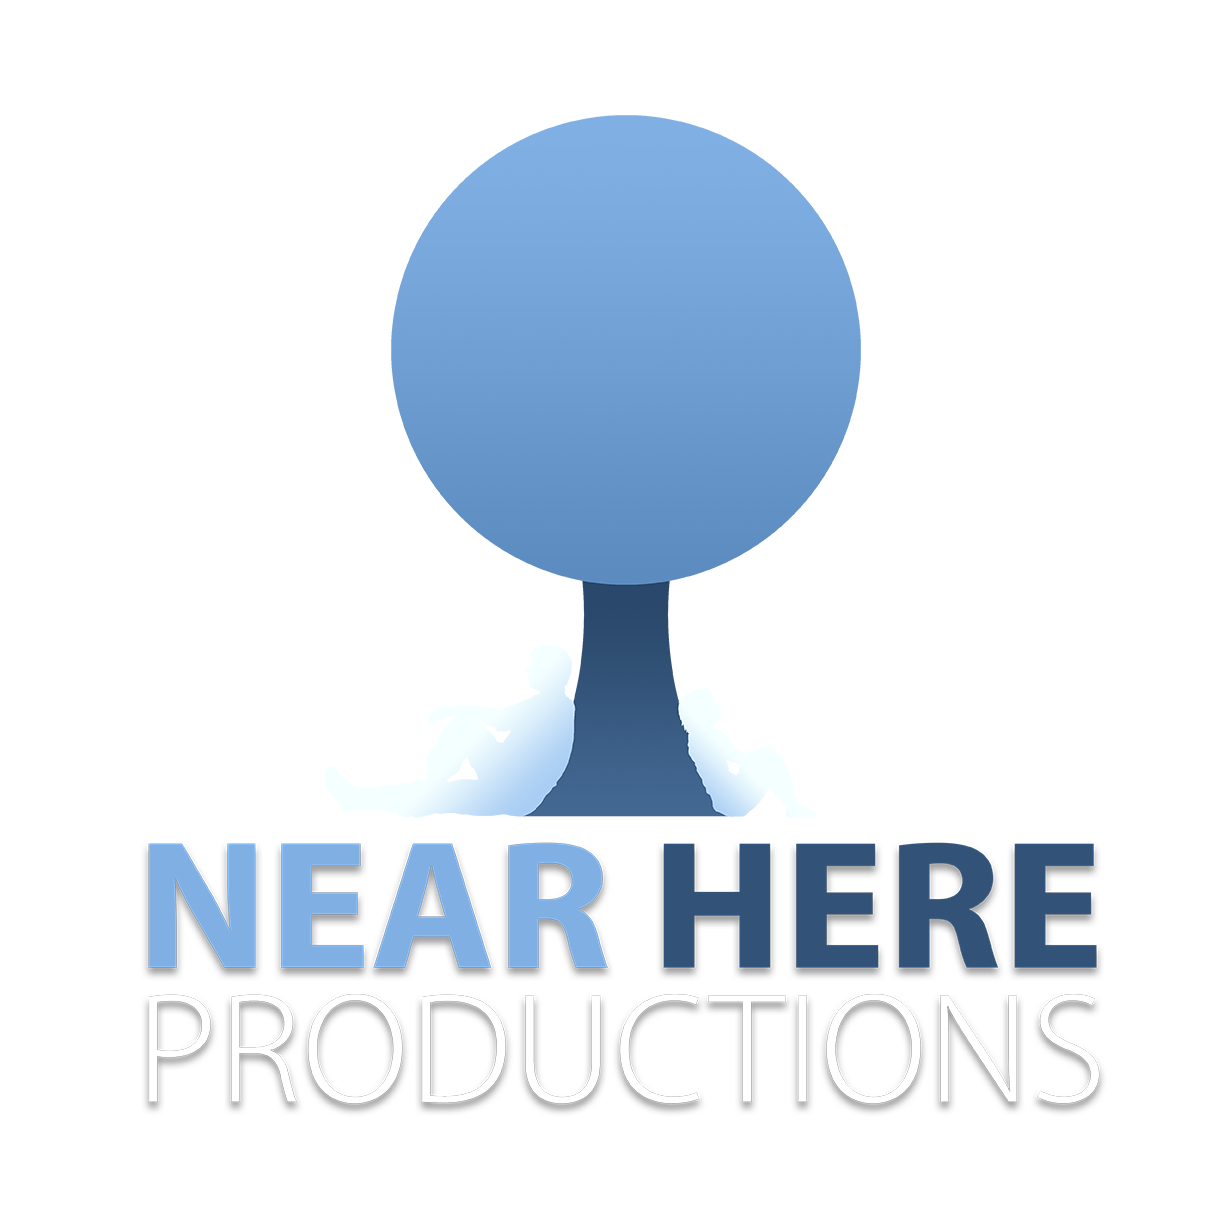 Near Here Productions